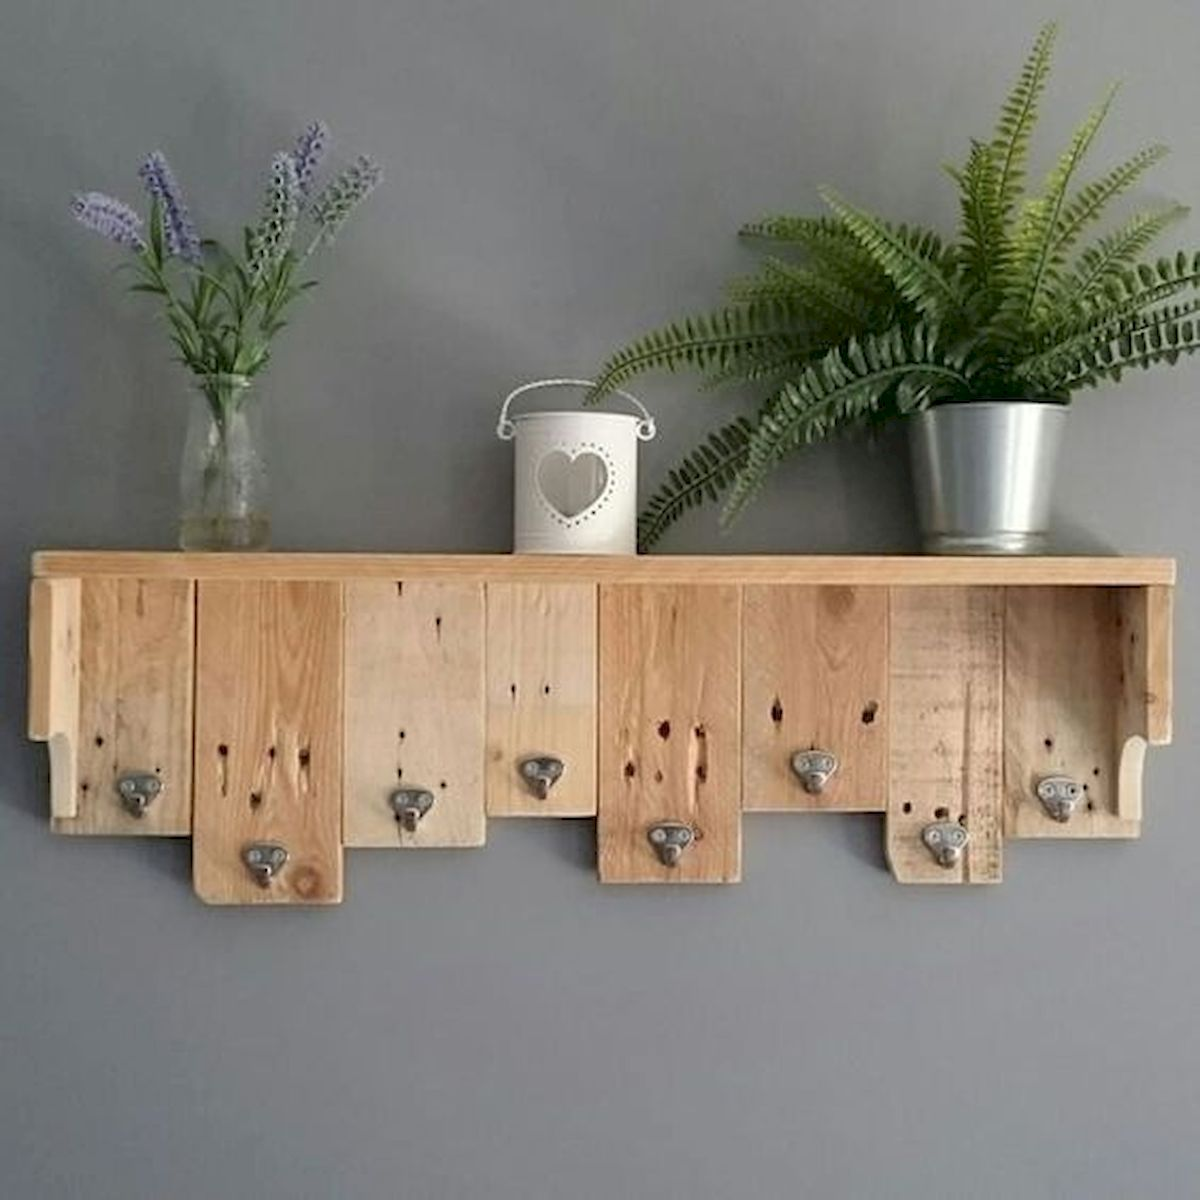 45 Easy and Cheap DIY Wood Furniture Ideas for Small House (18)